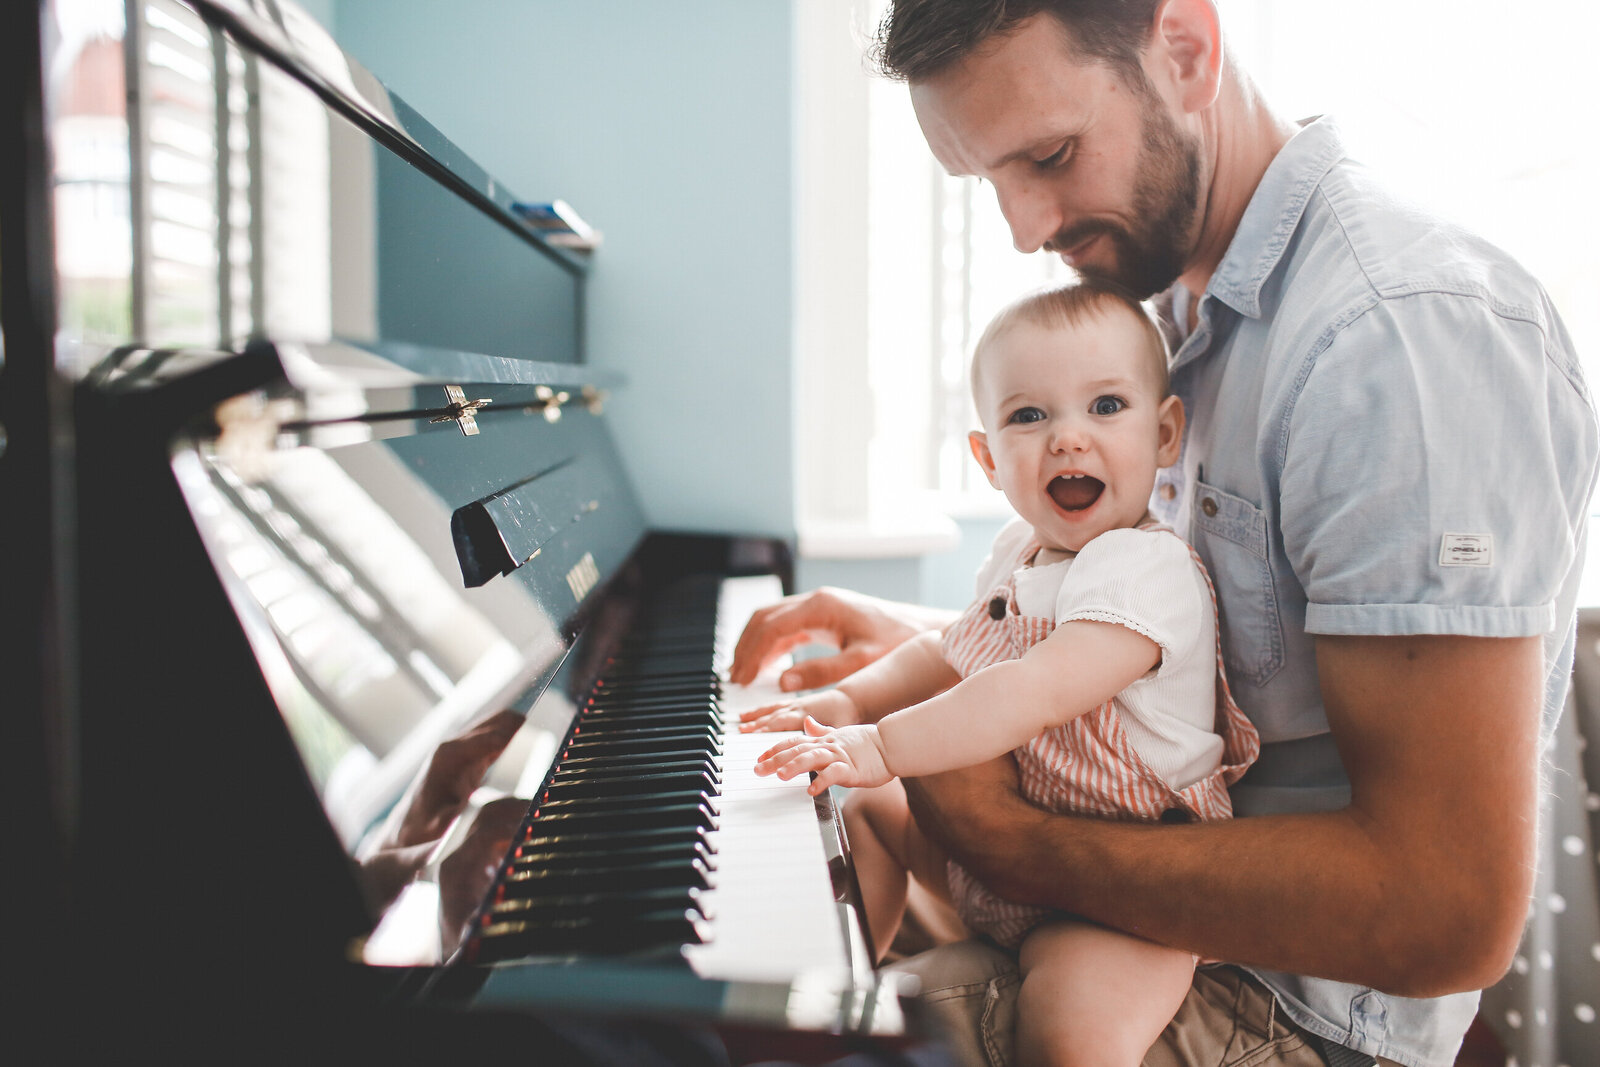 FP_FAMILY-BABY-PLAYS-PIANO-WITH-DAD-0023